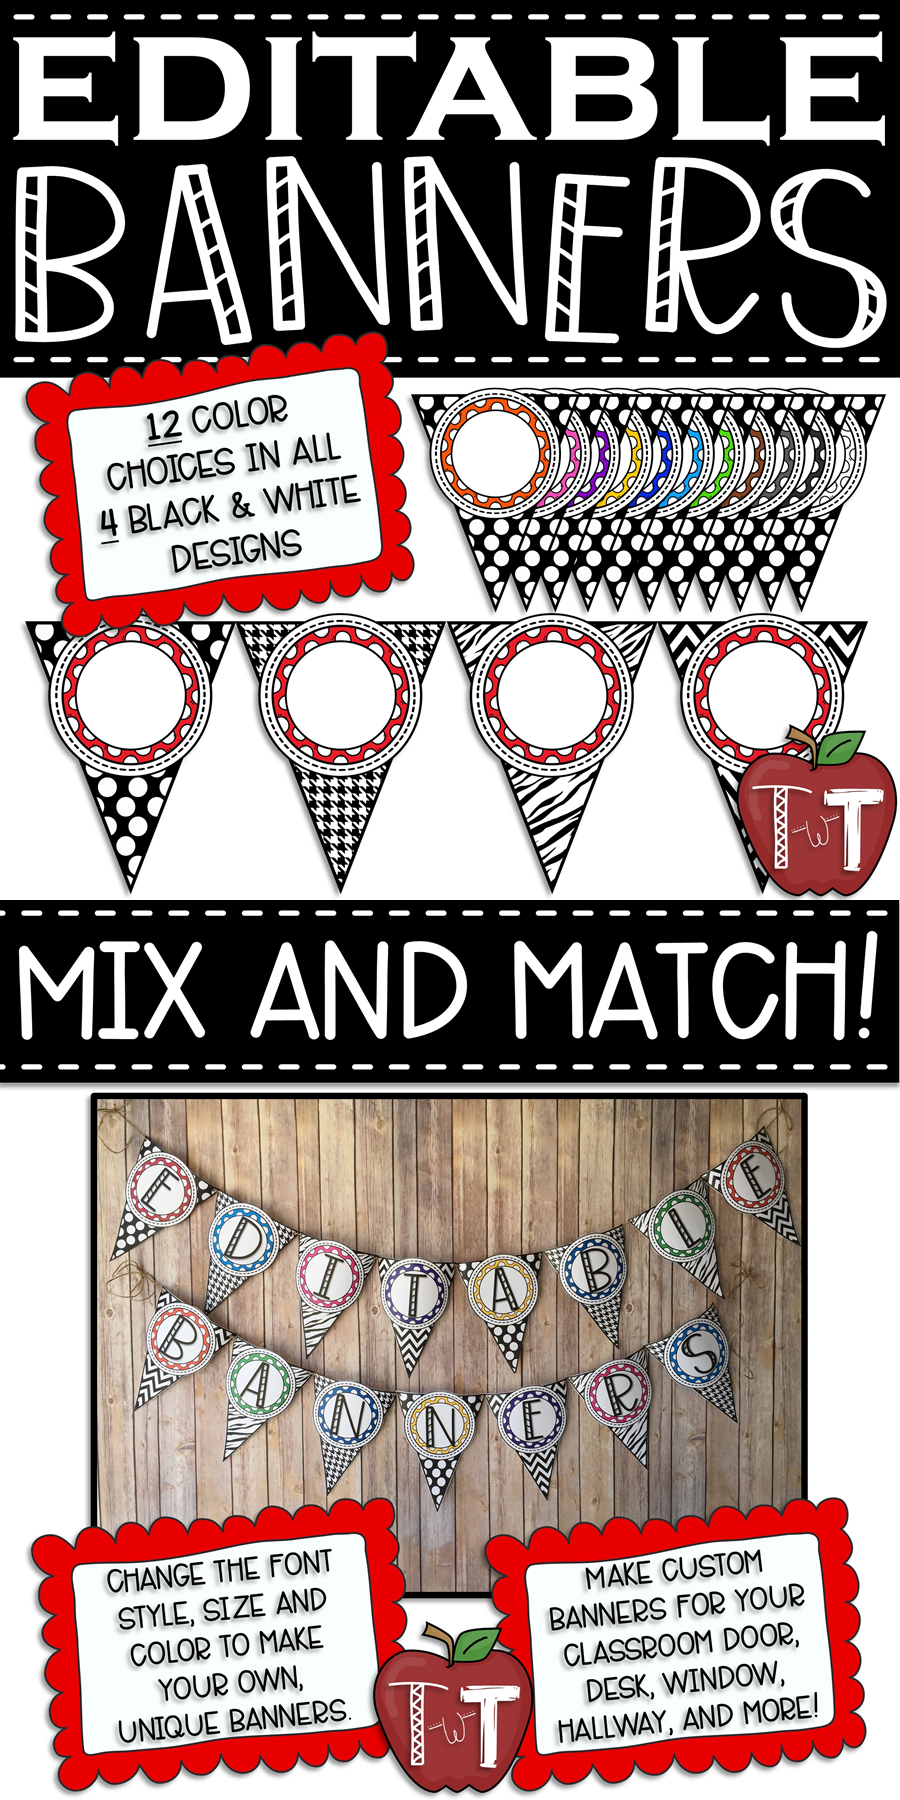 EDITABLE Banner Pennants | Teaching With Terhune | Classroom